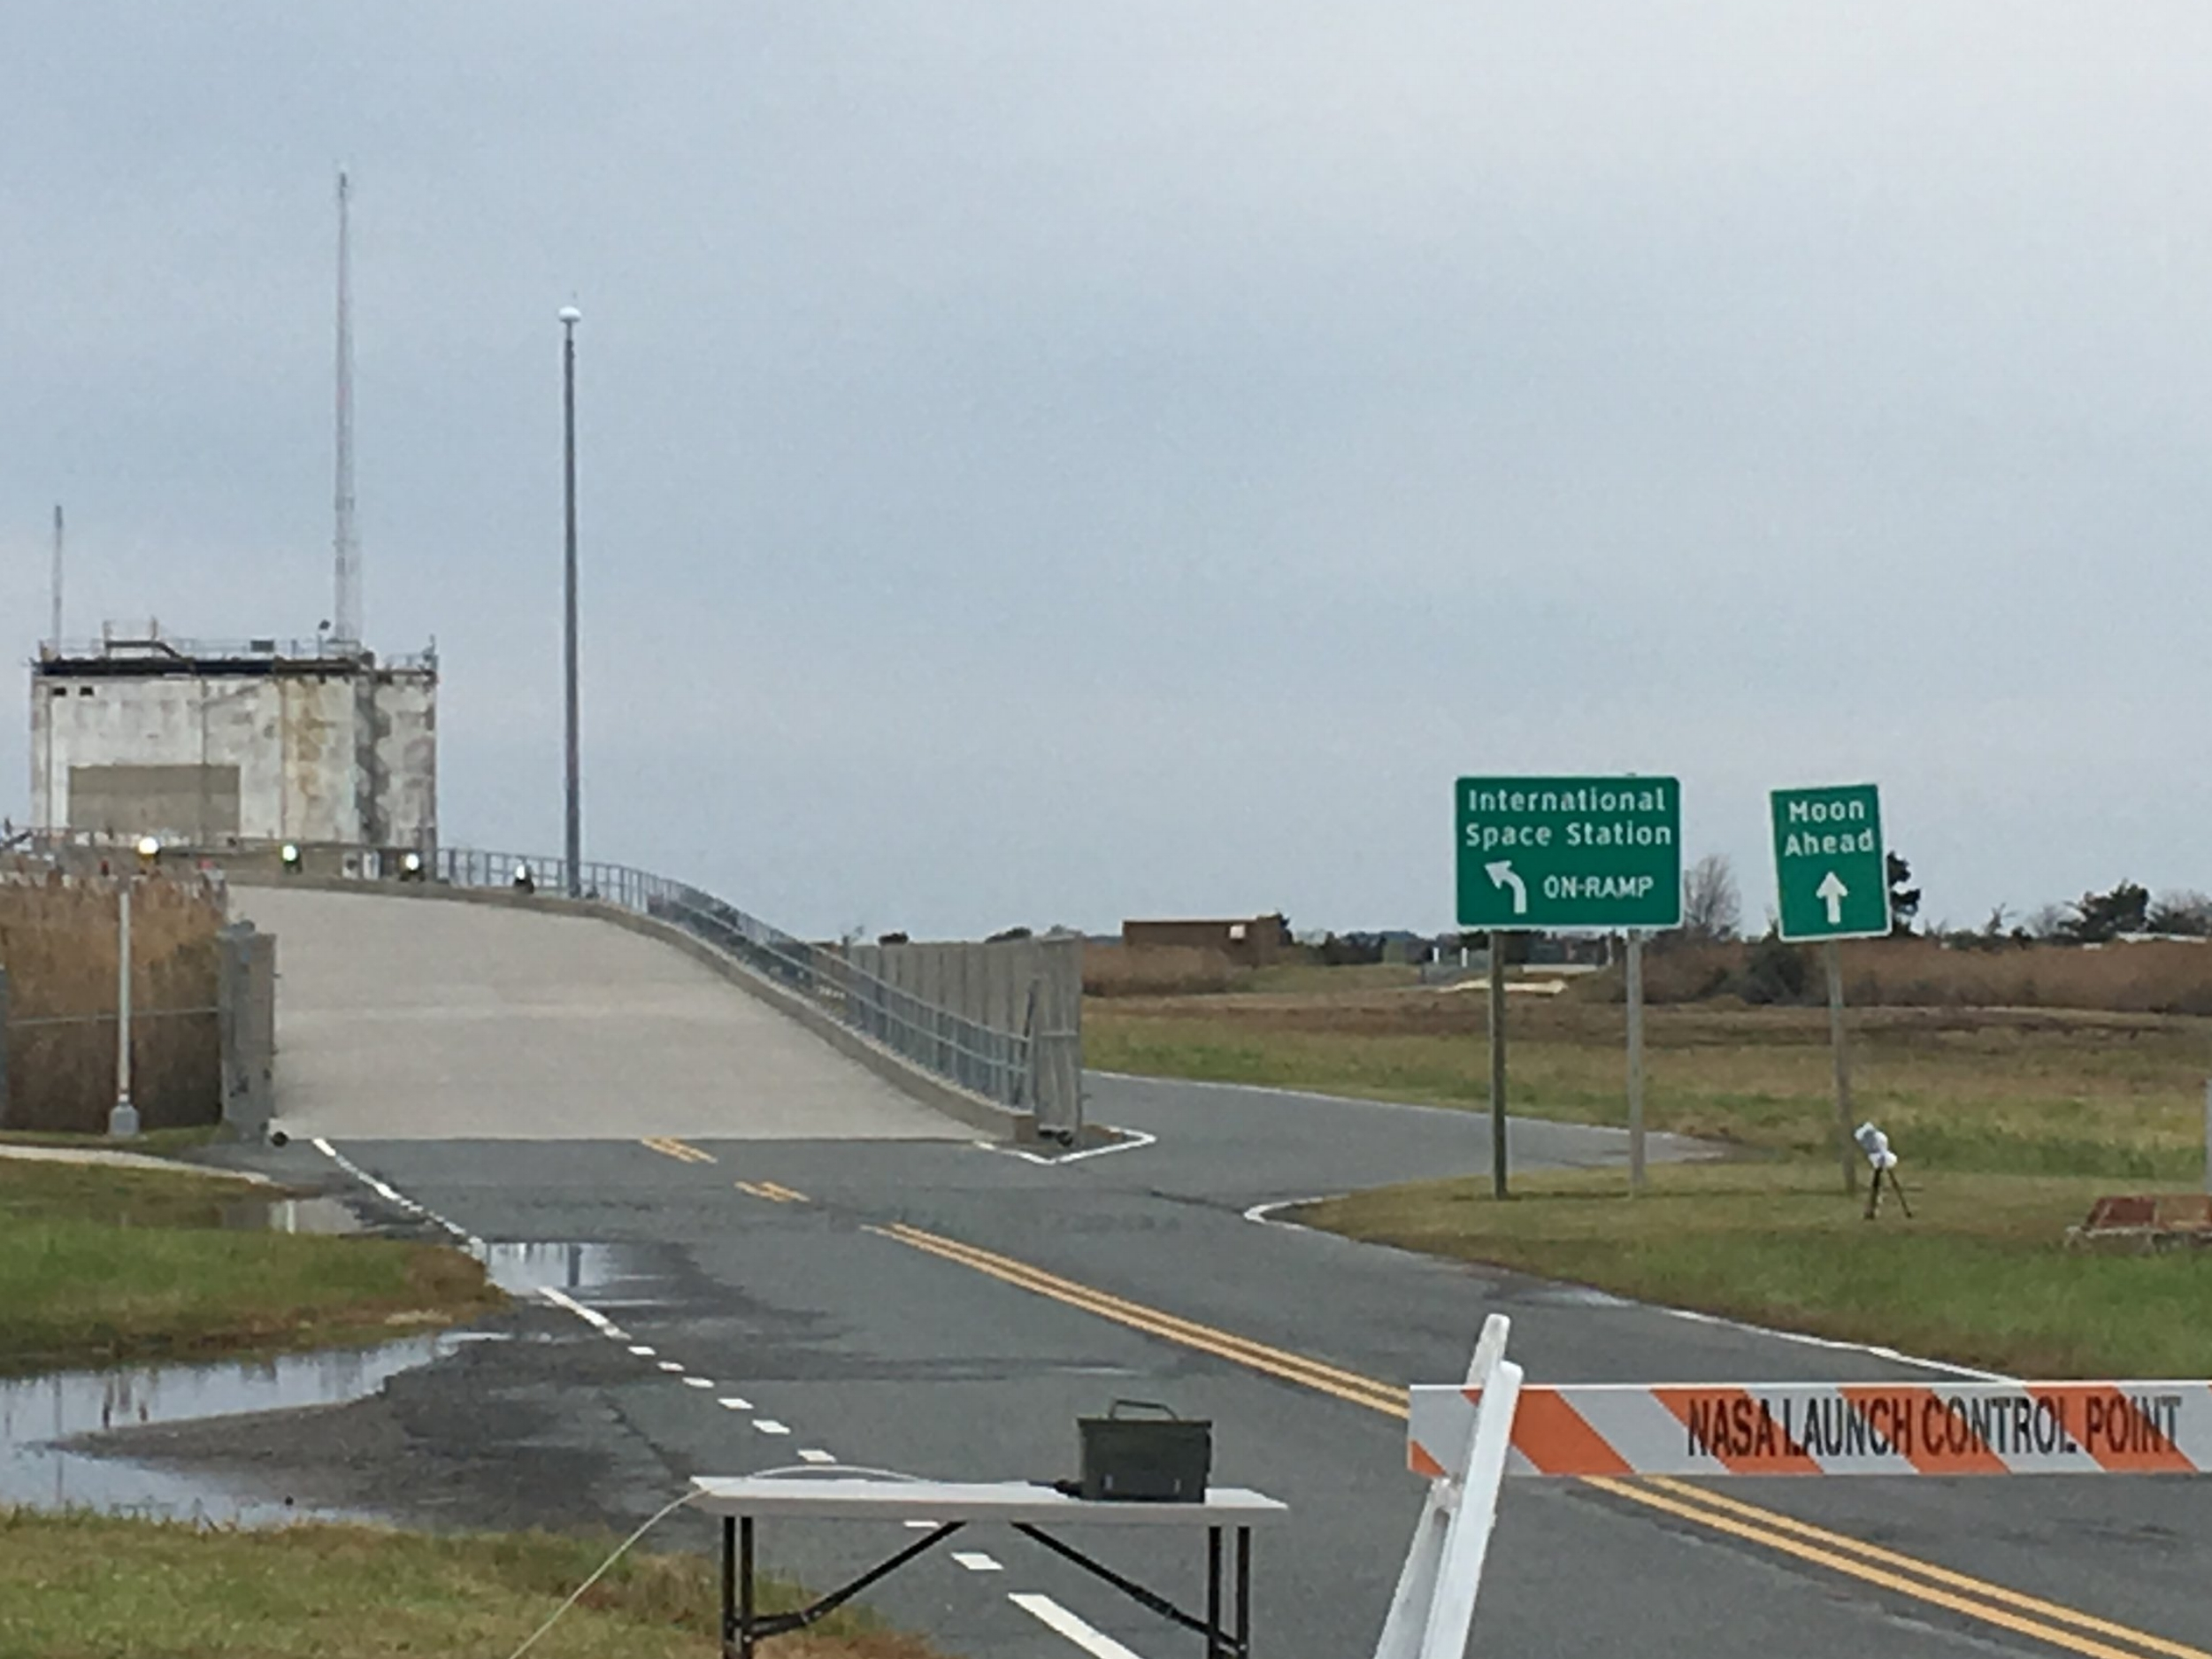 """The famous """"ISS On Ramp"""" and """"Moon Ahead"""" signs."""